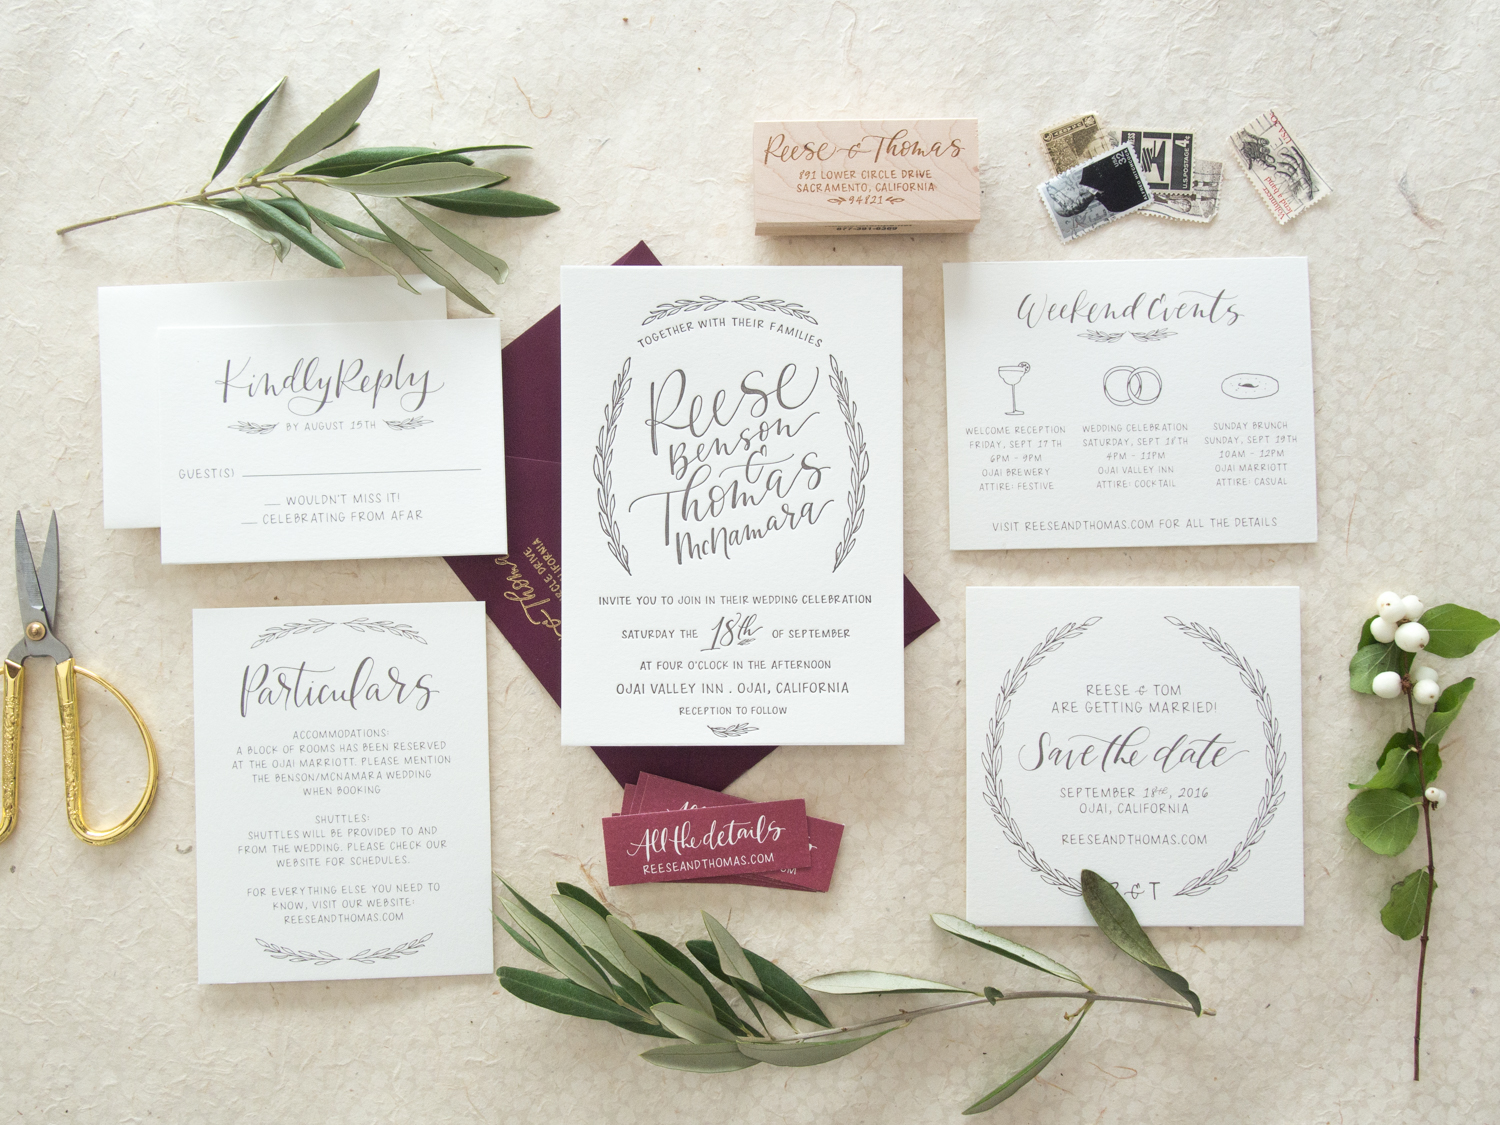 Rustic Invitation Suite from Bright Room Studio